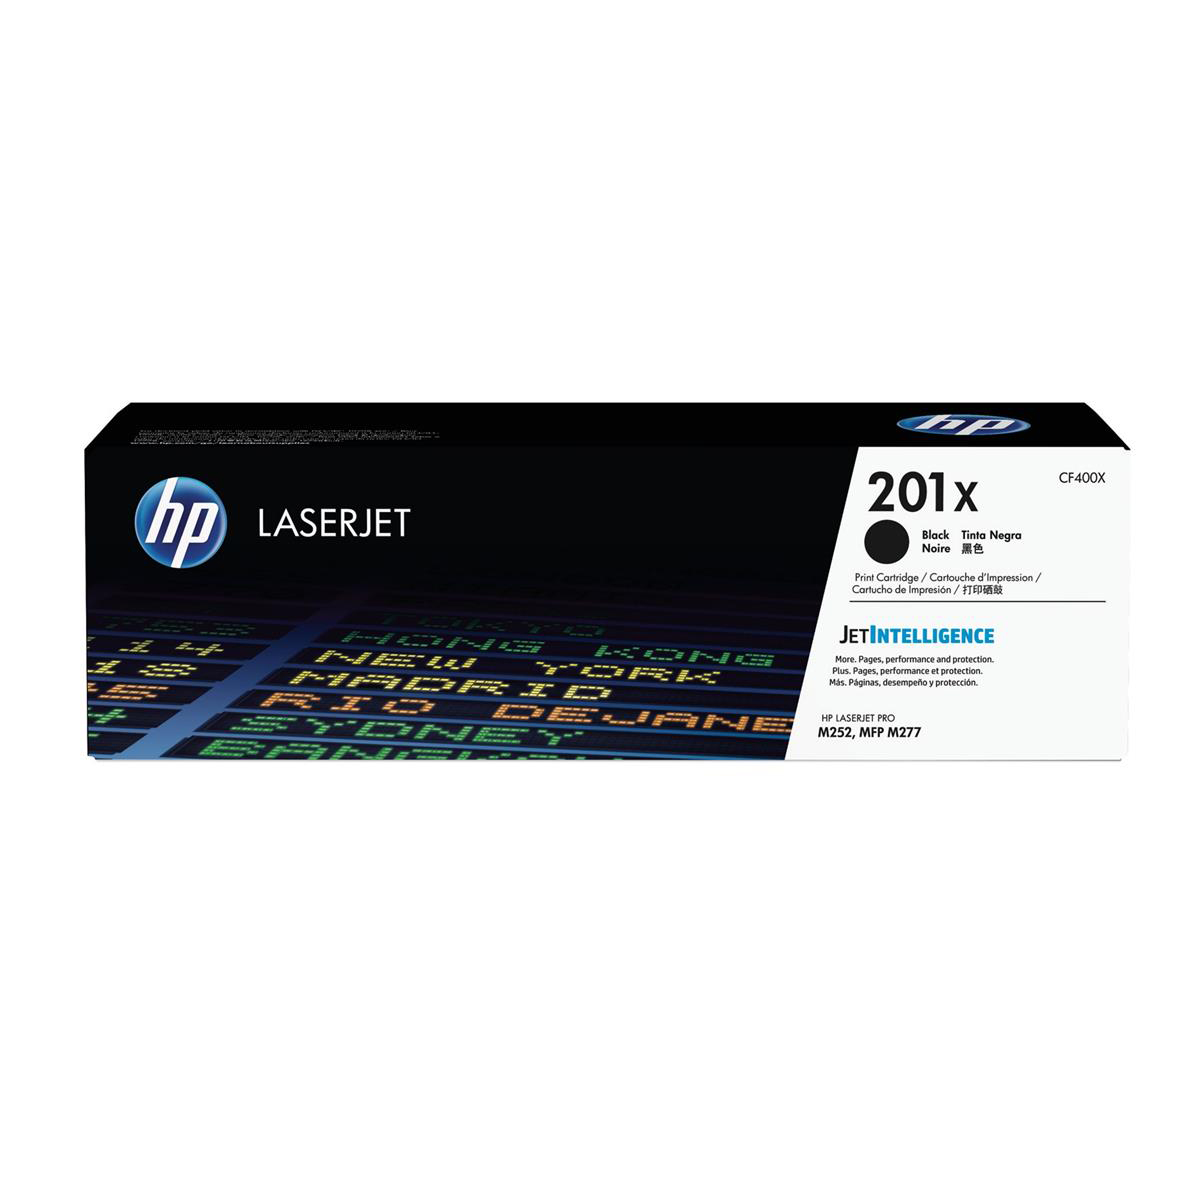 HP 201X Laserjet Toner Cartridge High Yield Page Life 2800pp Black Ref CF400X